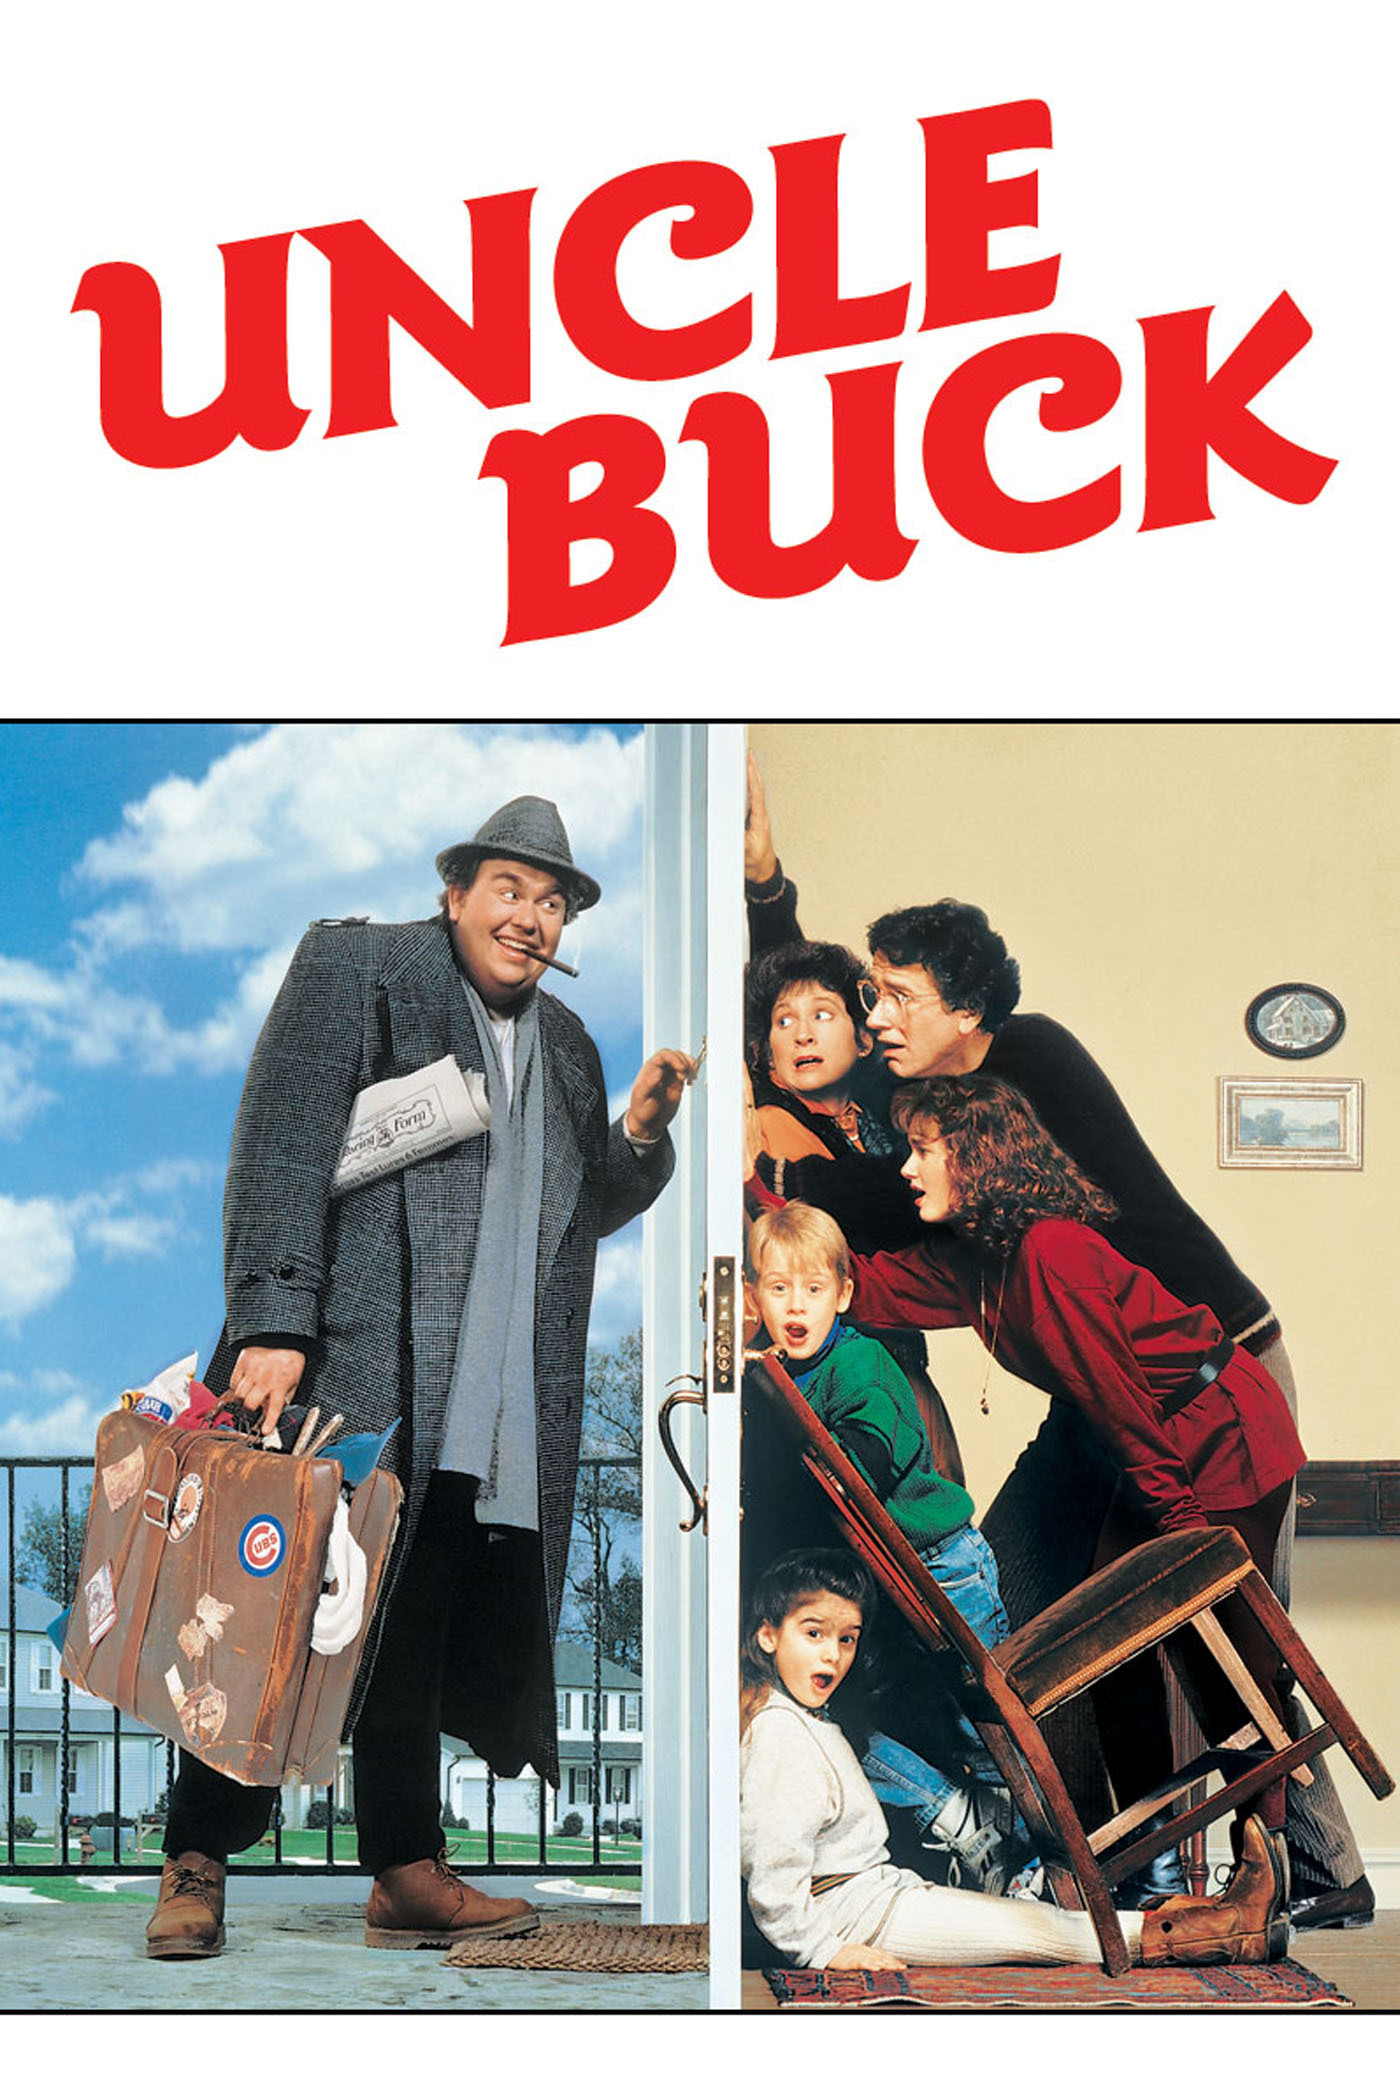 Uncle Buck Movie Quotes. QuotesGram